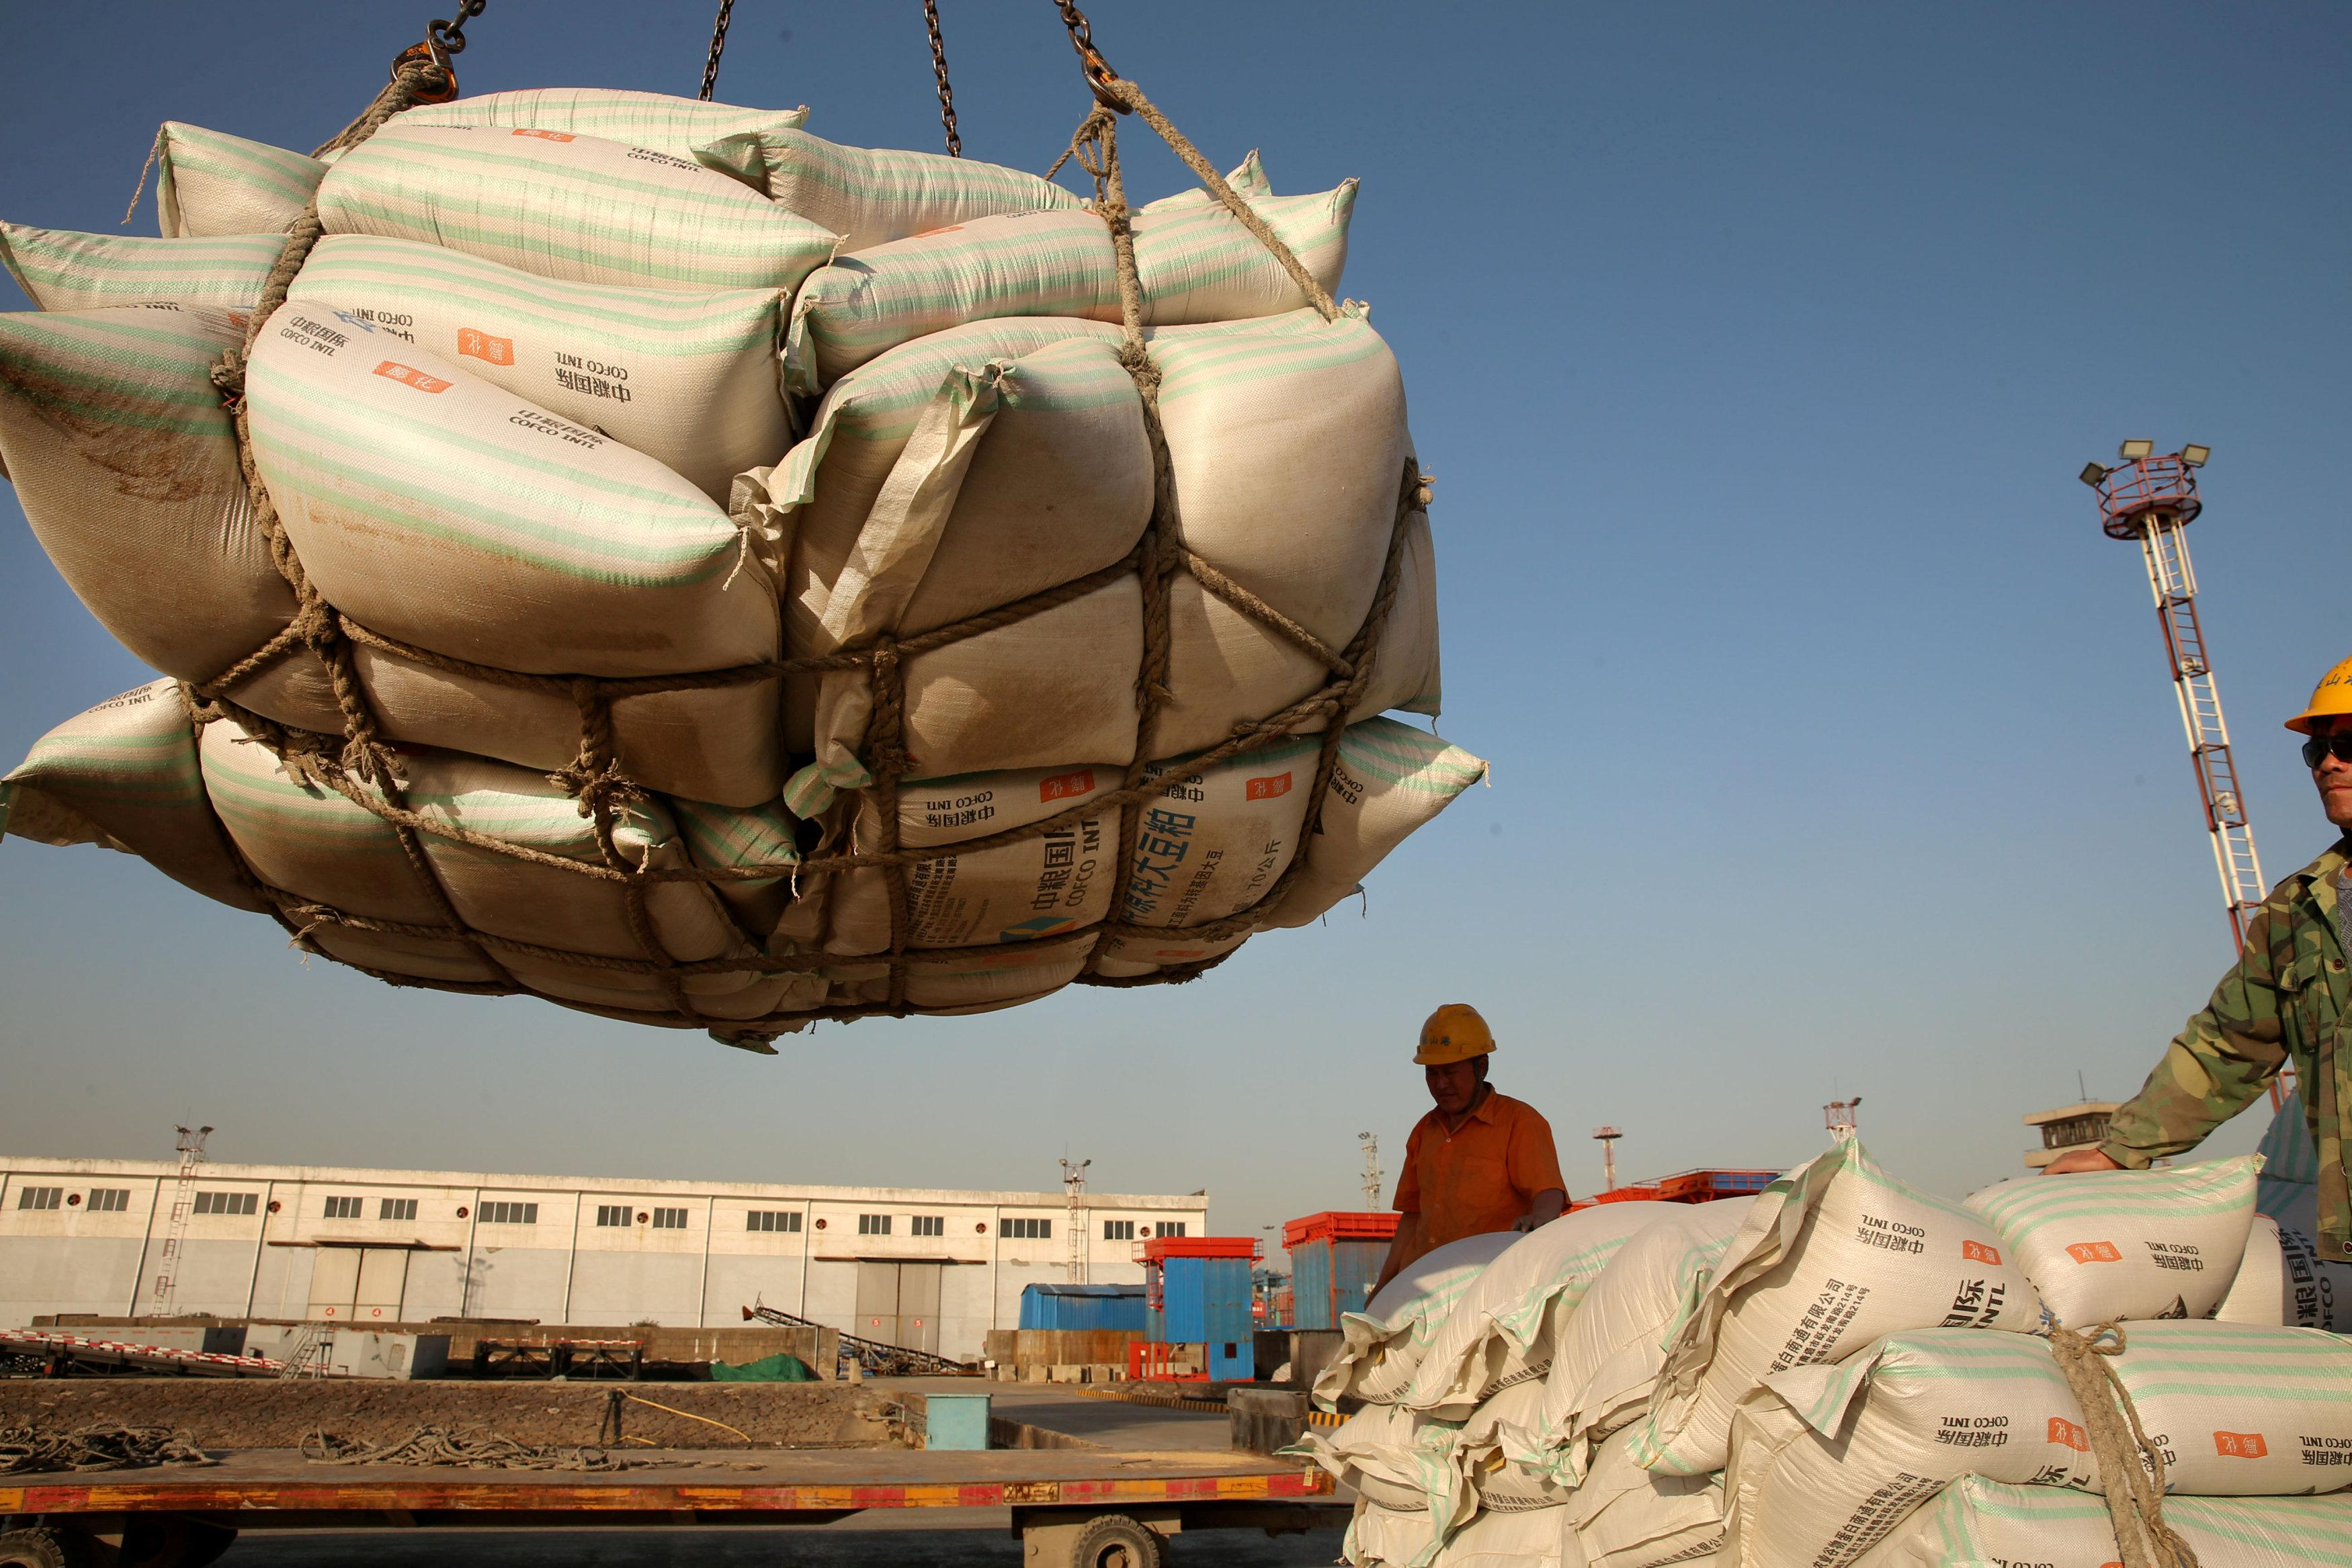 Workers transport imported soybean products at a port in Nantong, Jiangsu province, China April 9, 2018. Picture taken April 9, 2018. Stringer